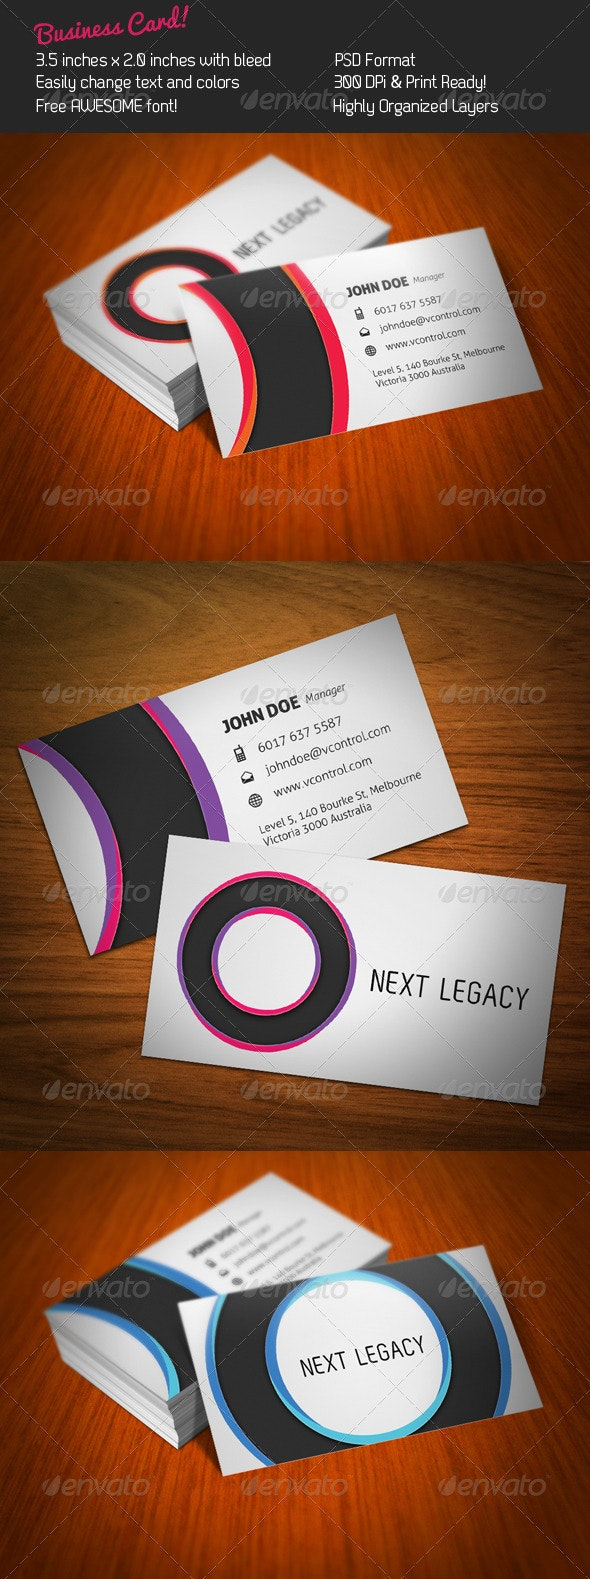 Circles Business Card - Corporate Business Cards